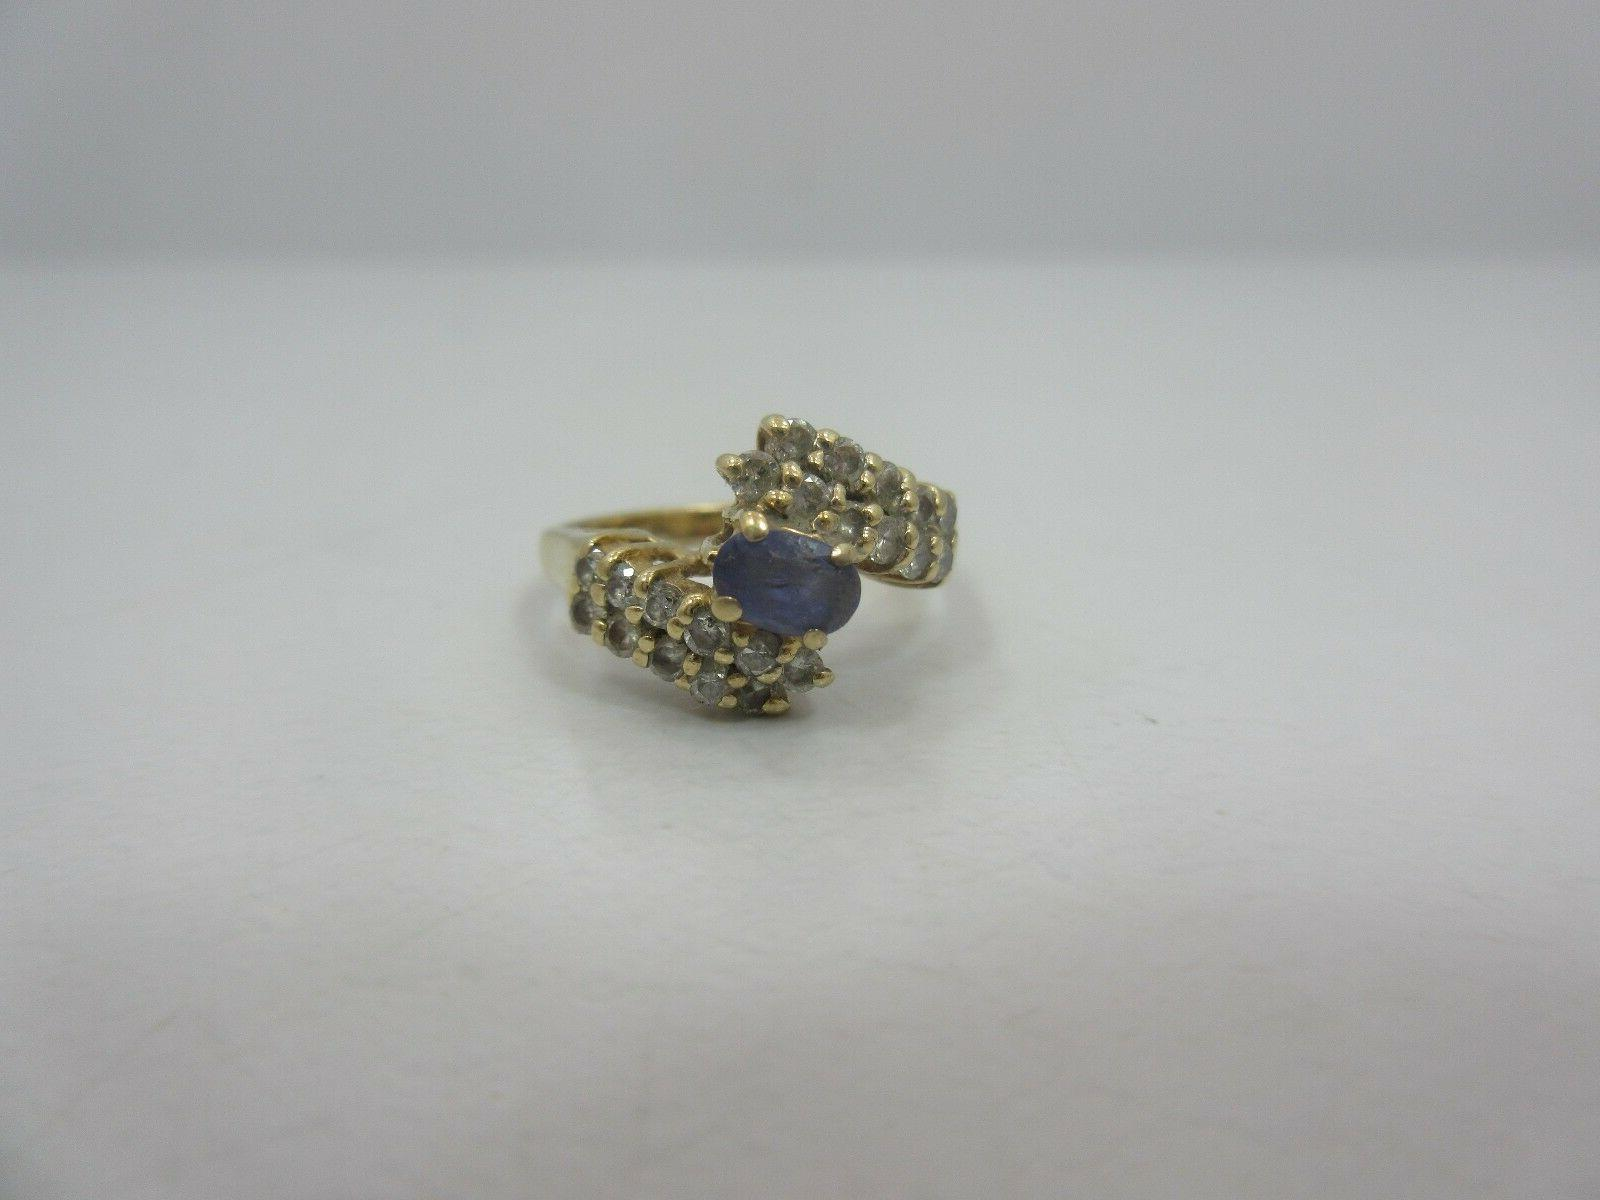 LeVian 14k OVAL RING size 5.5